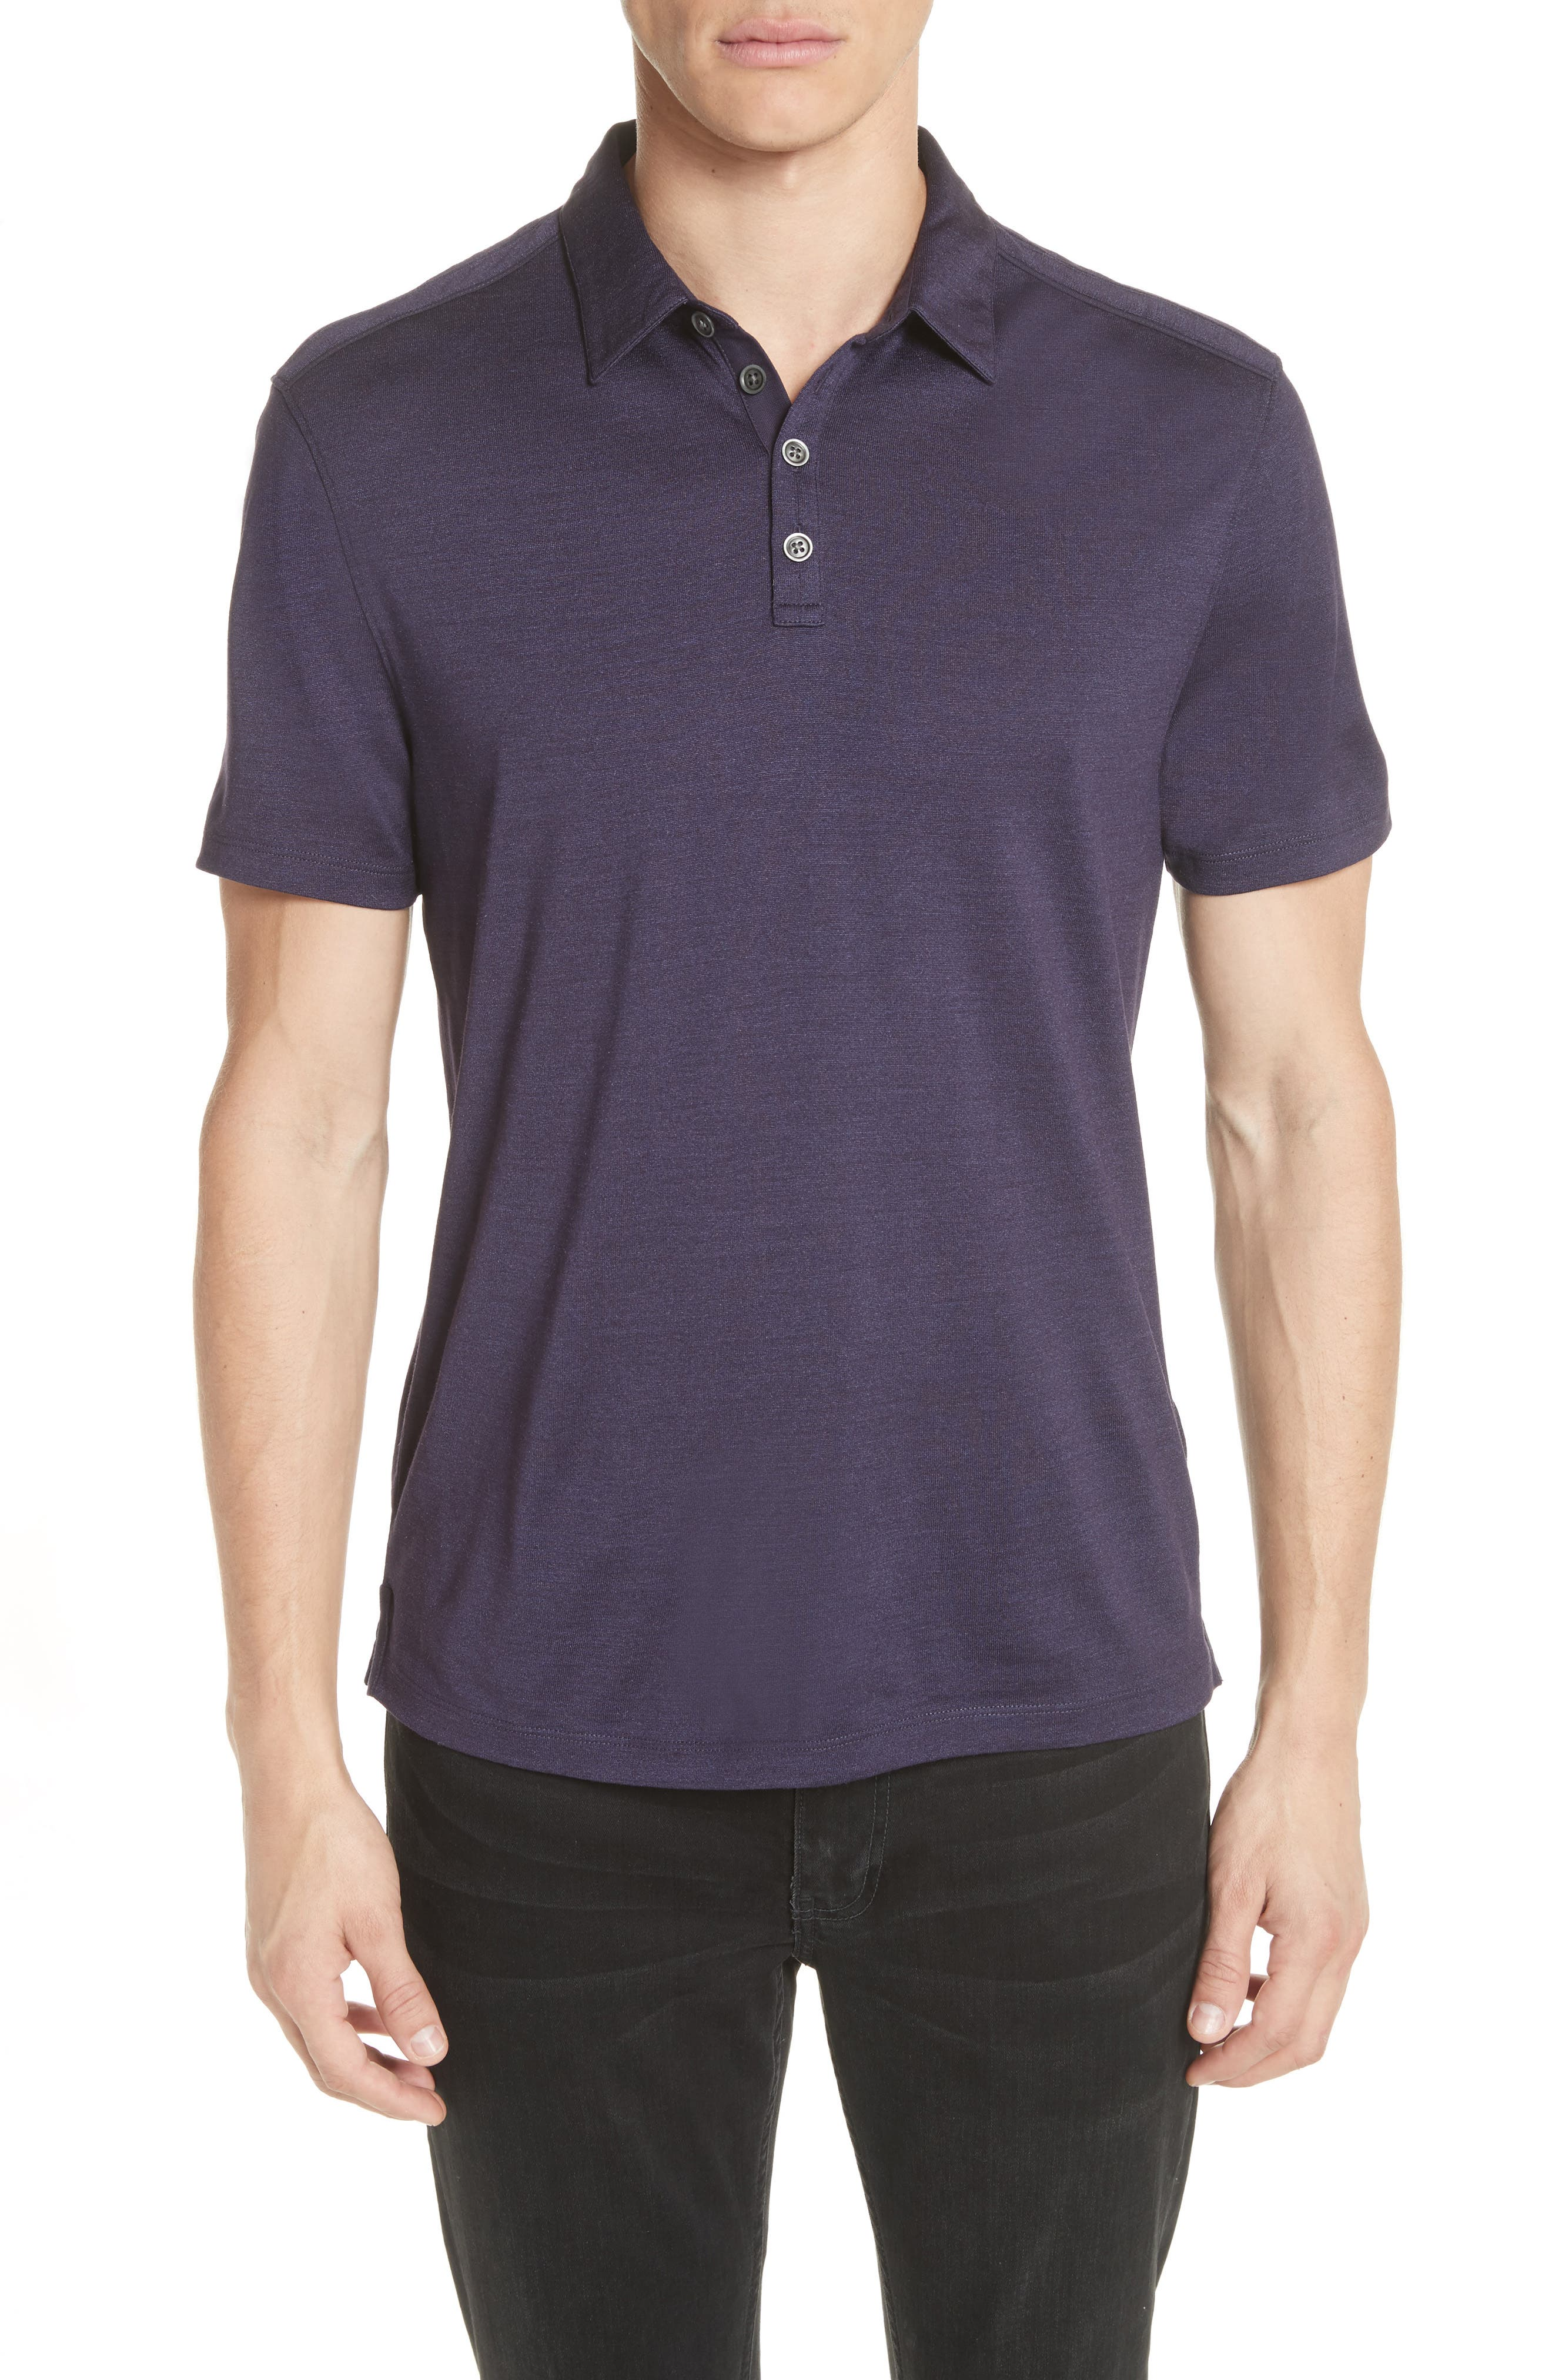 John Varvatos Hampton Jersey Polo